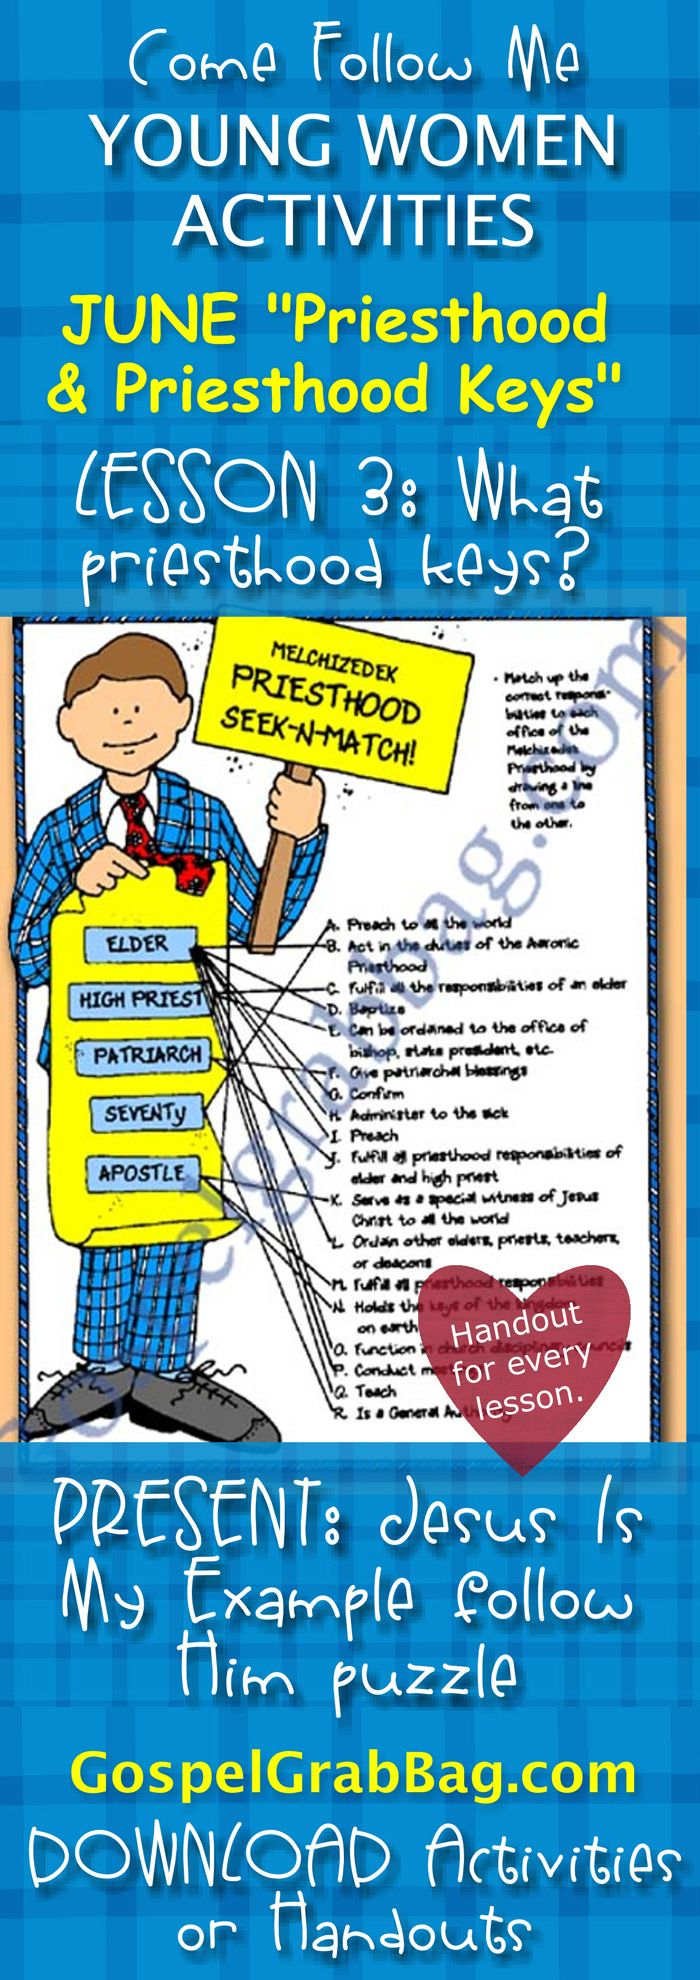 """PRIESTHOOD KEYS: Come Follow Me – LDS Young Women Activities, JUNE Theme: """"Priesthood and Priesthood Keys"""", LESSON: What are the keys of the priesthood? Lesson handouts and activities, ACTIVITY: Melchizedek Priesthood Seek-and-Match, download from gospelgrabbag.com"""